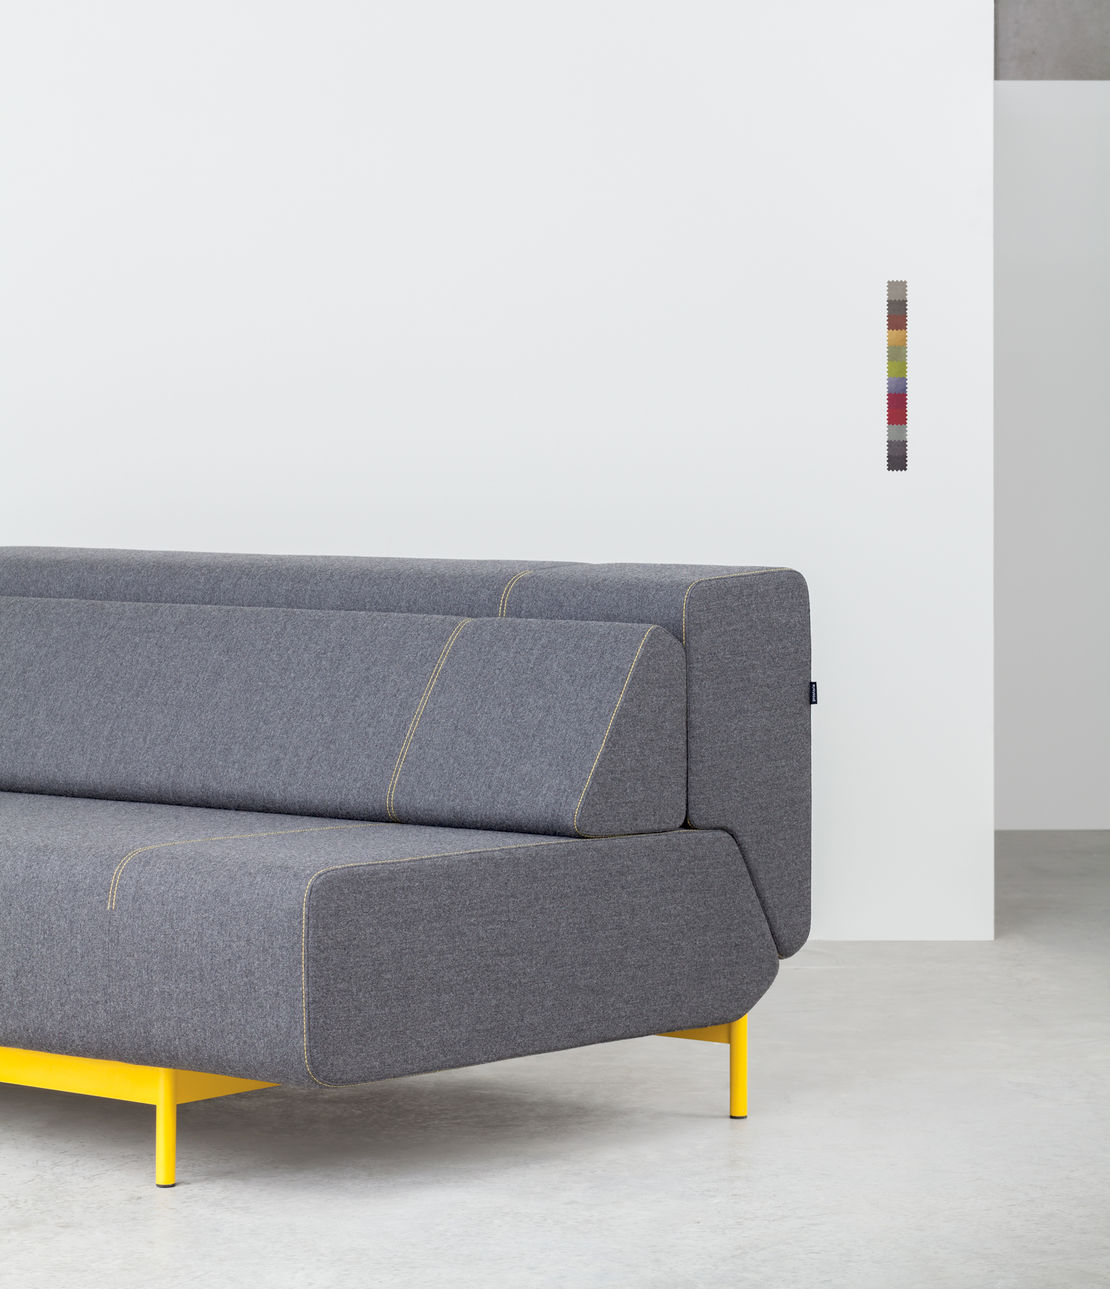 Pil Low Sofa Bed Stylecraft Lounging